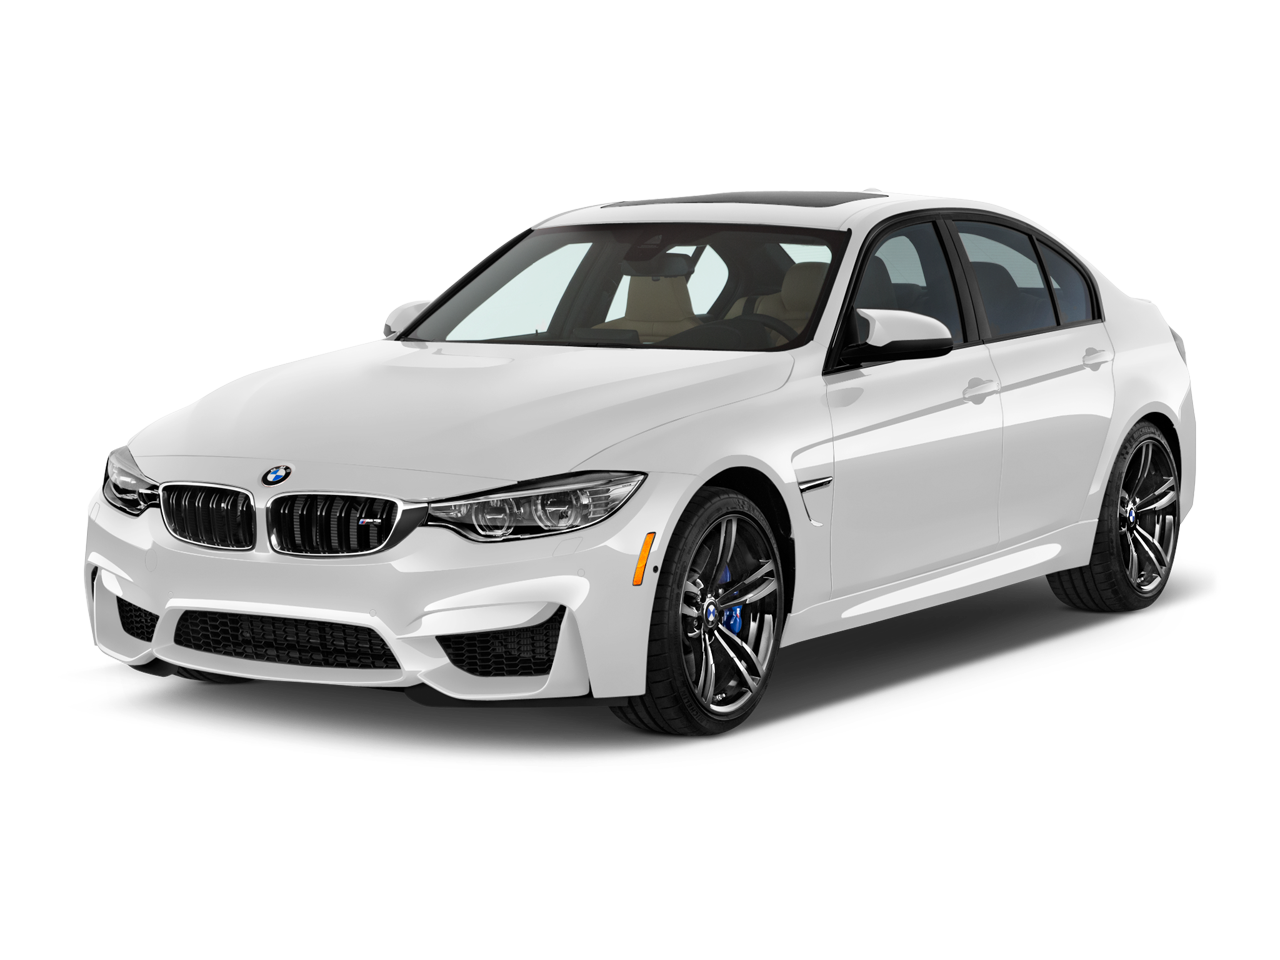 download bmw png clipart for designing use #22454